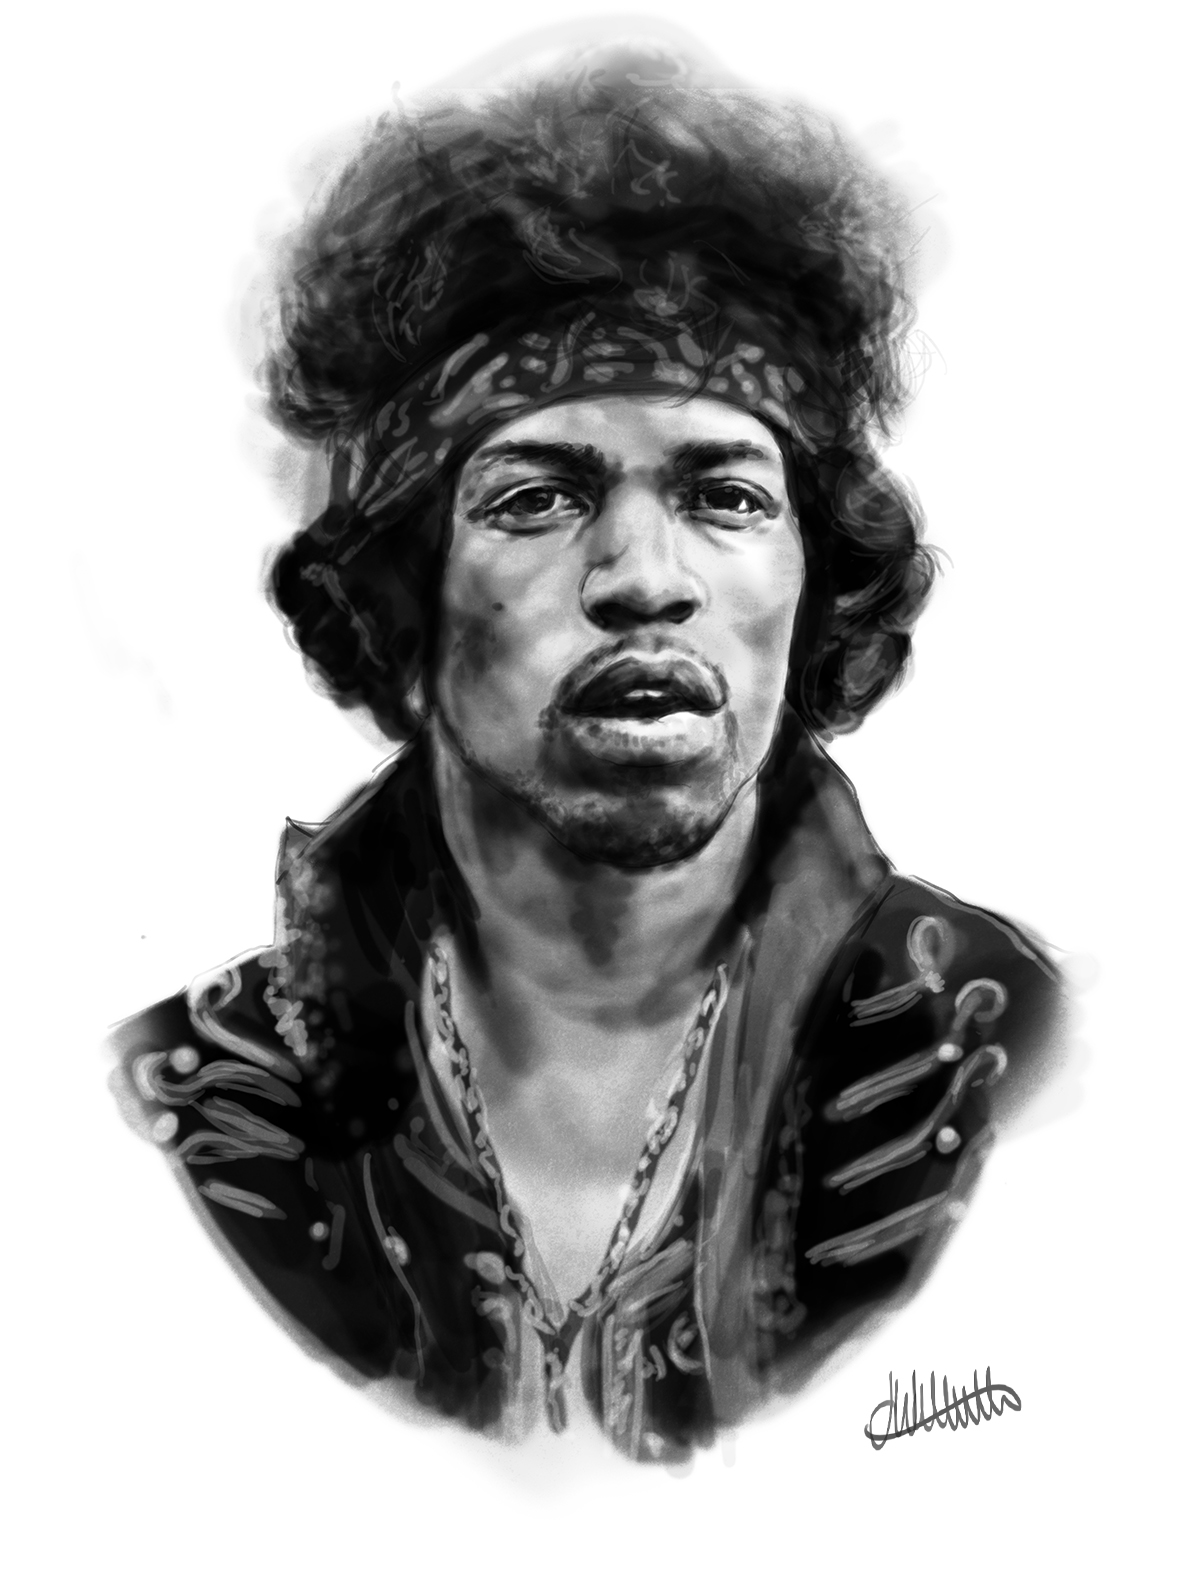 Jimi Revisited